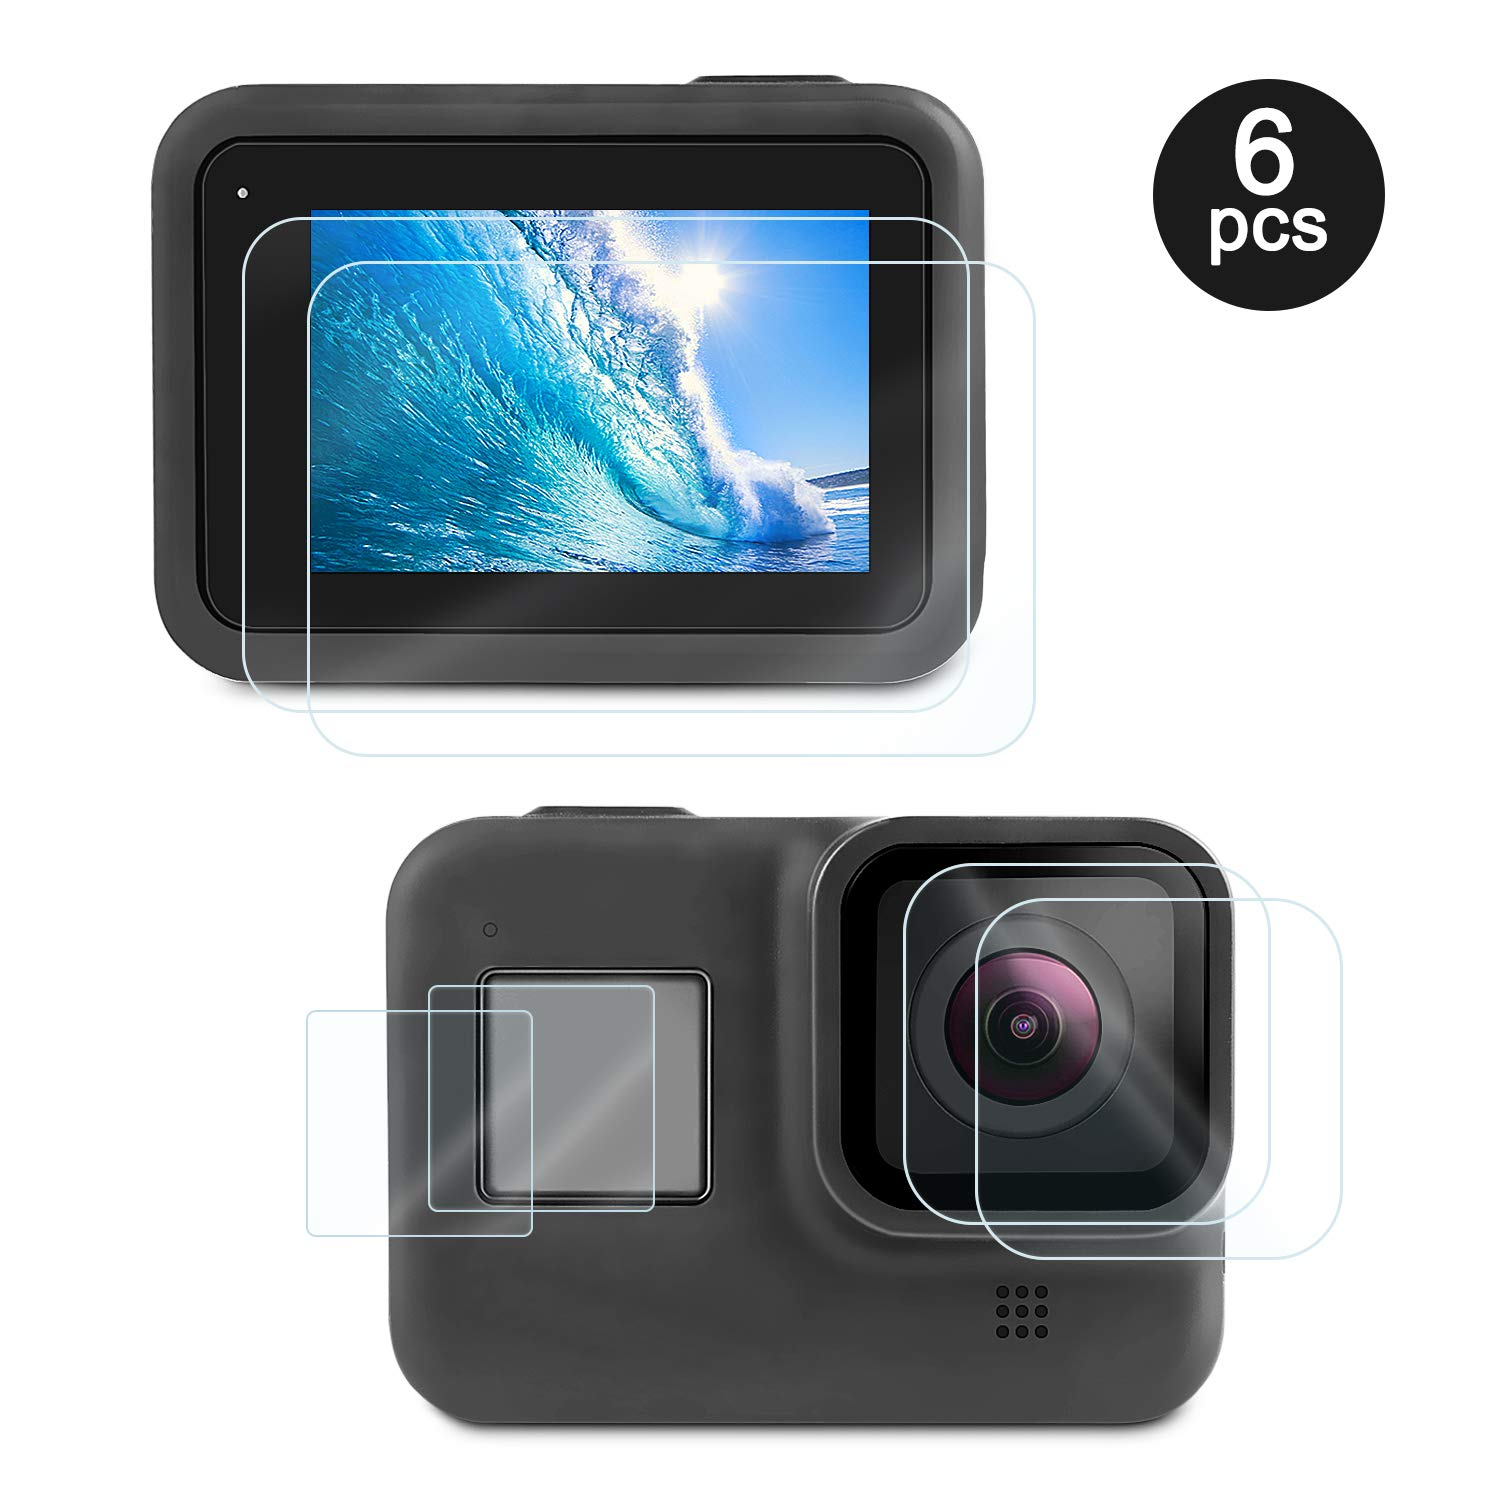 Deyard Screen Protector for GoPro Hero 8 Black, 4pcs Ultra Clear Tempered Glass Screen Protectors + 2pcs Display HD Protective Films Lens Protector Accessories by Deyard